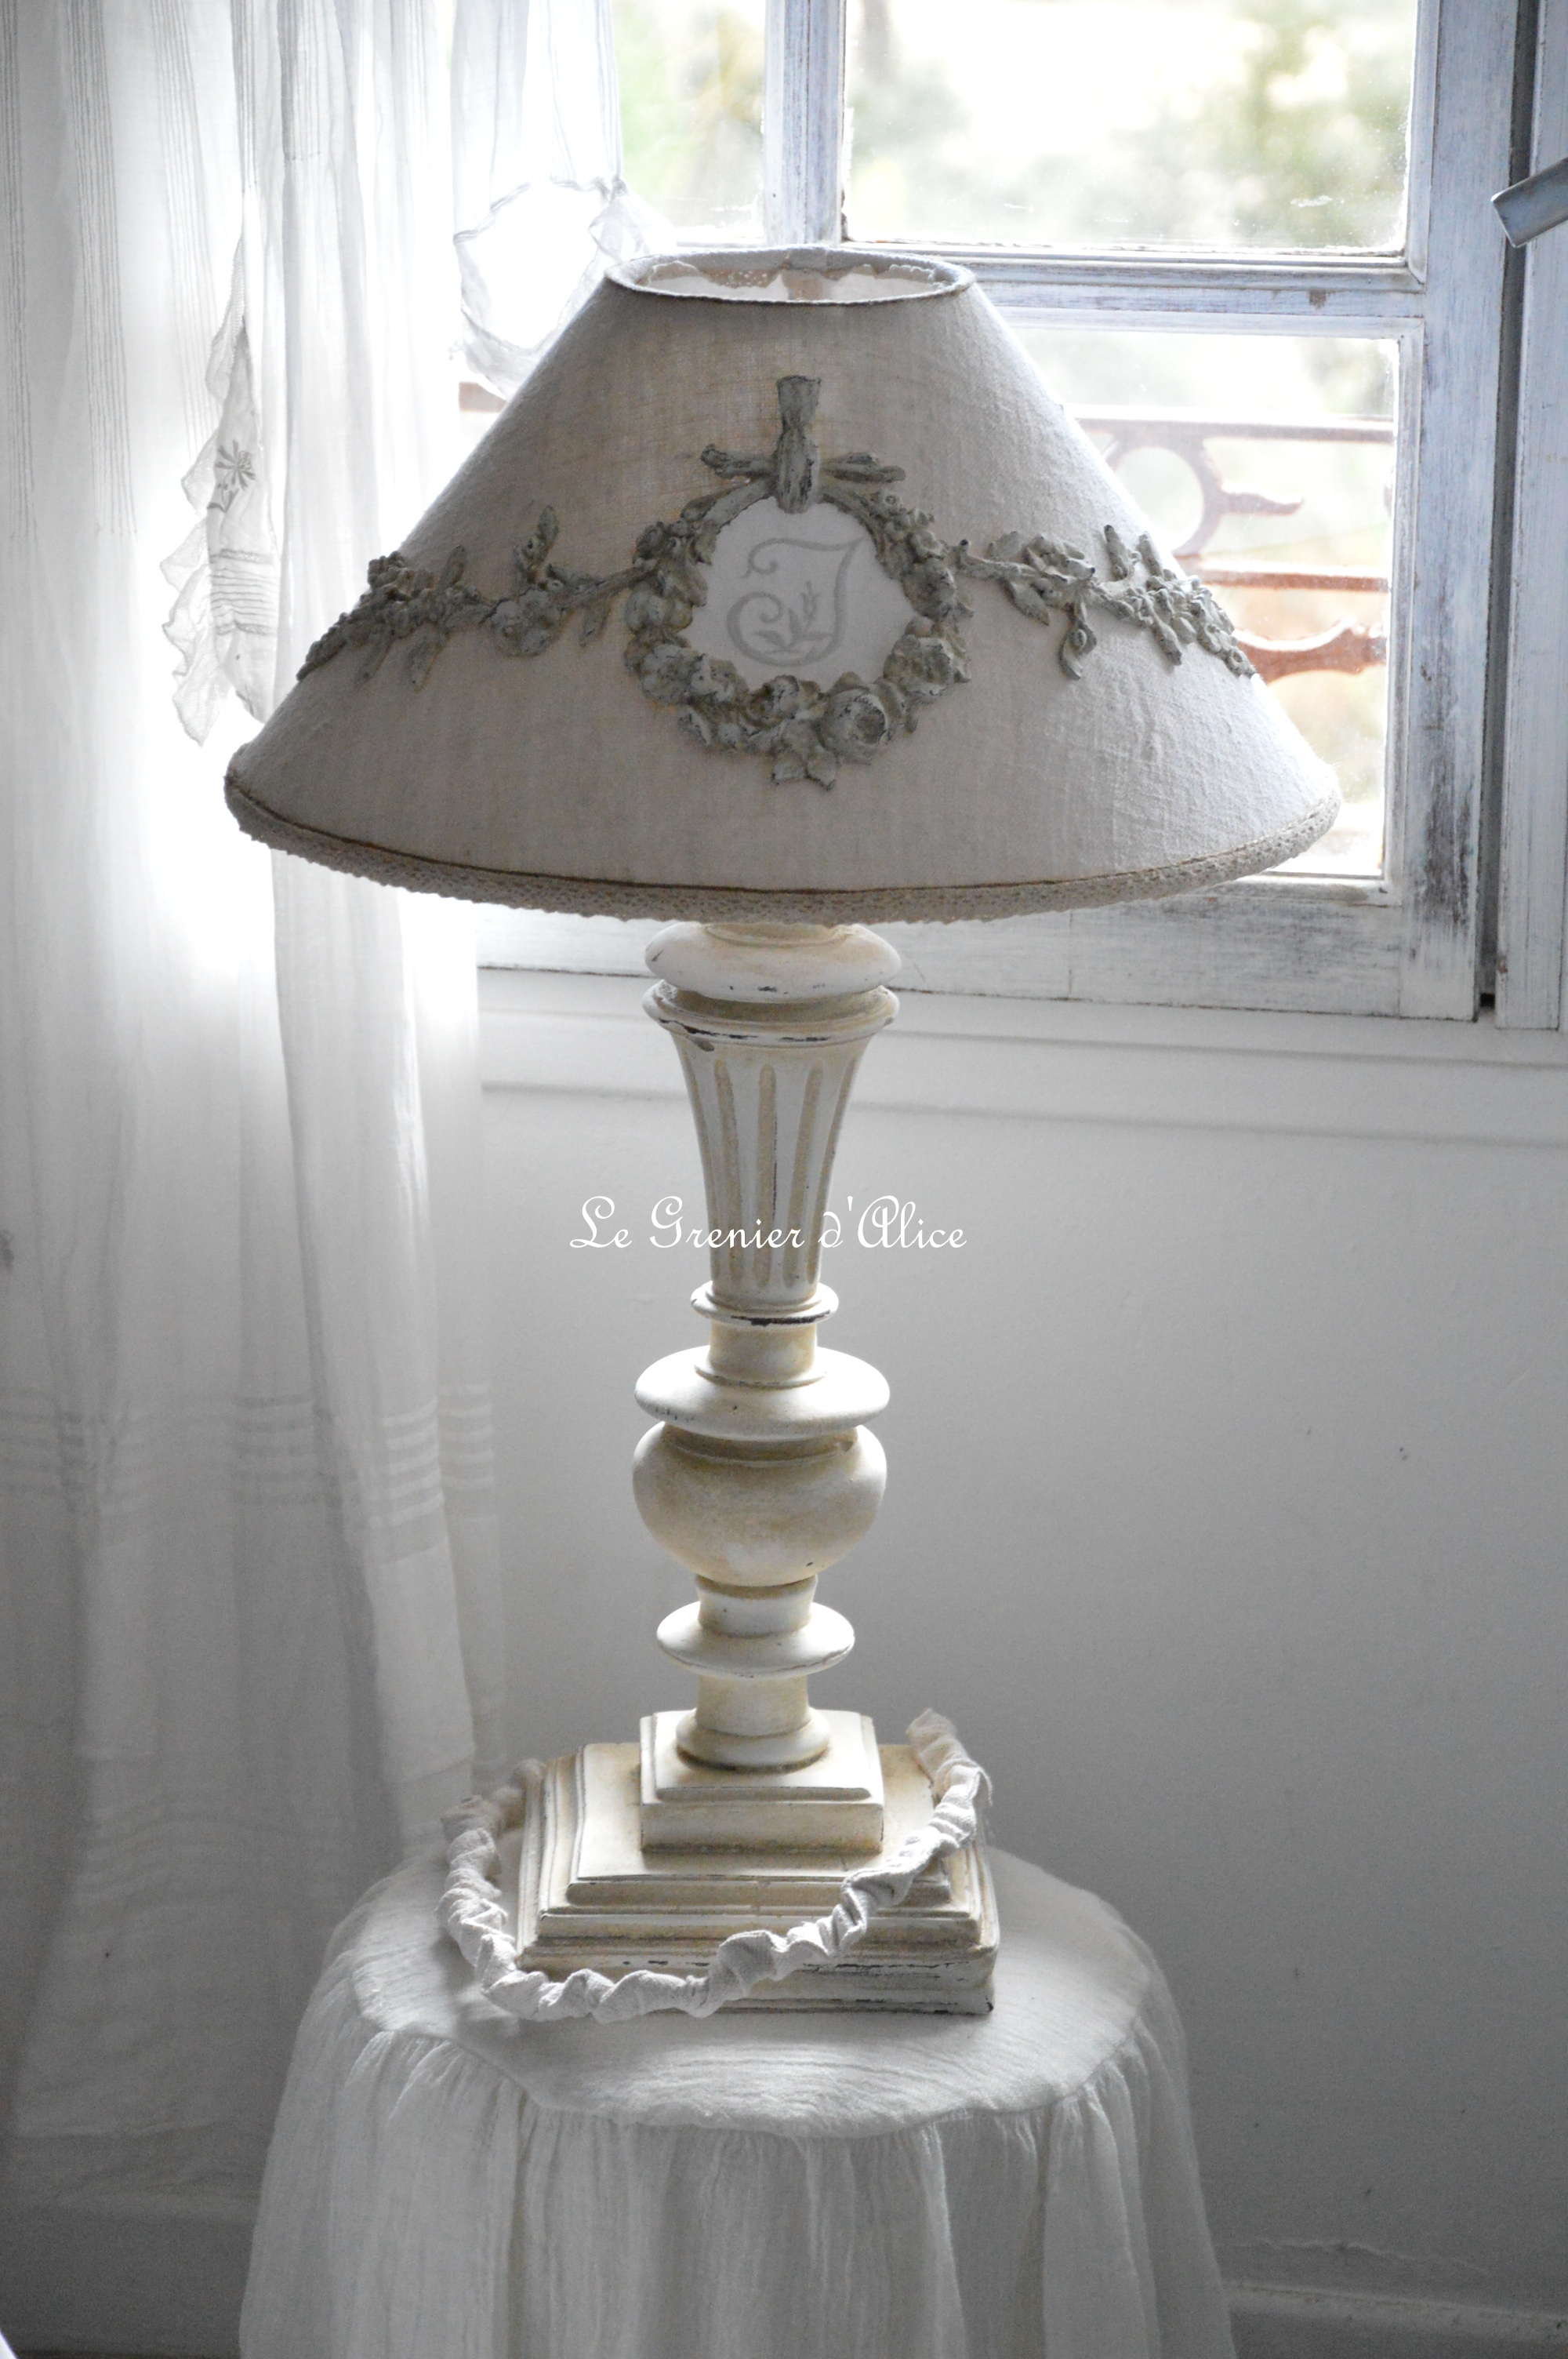 Le grenier d 39 alice shabby chic et romantique french decor for Lampe style shabby chic